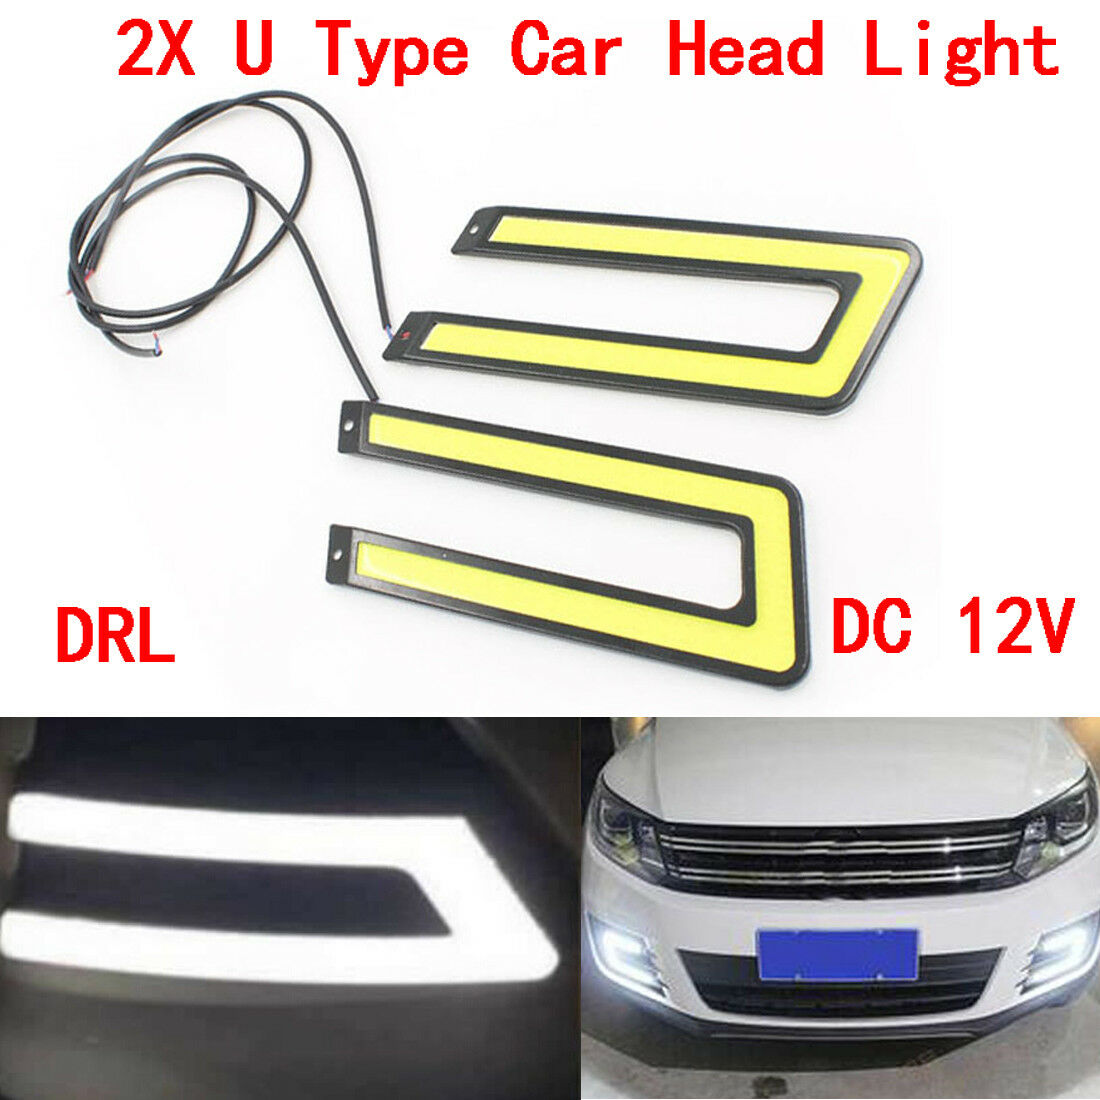 2x U Type Daytime Running Light Drl Cob Led Car Headlight Fog Lamp Wiring Daylight Lights Drls On A Caravan White Dc 12v 1 Of 6only 2 Available See More